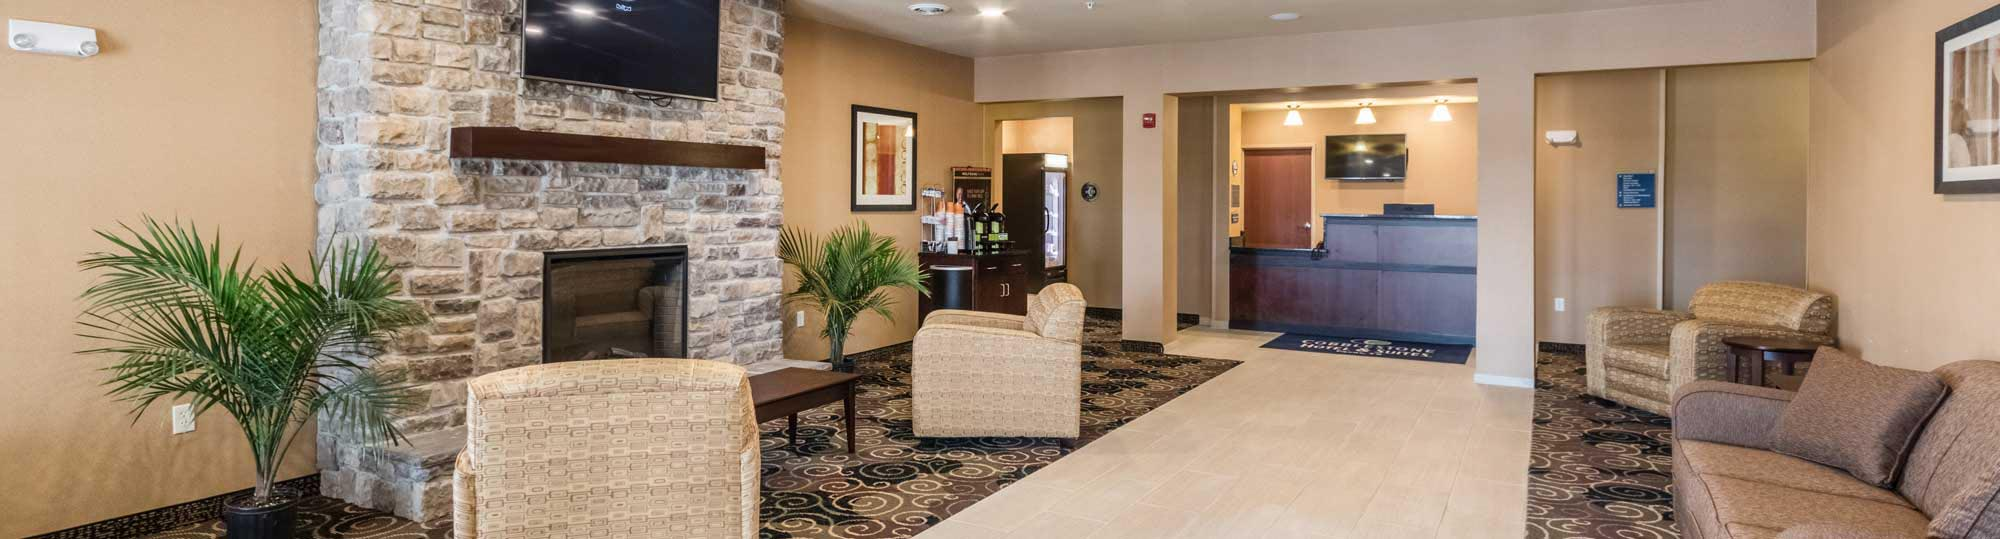 Cobblestone Hotel and Suites Pecos